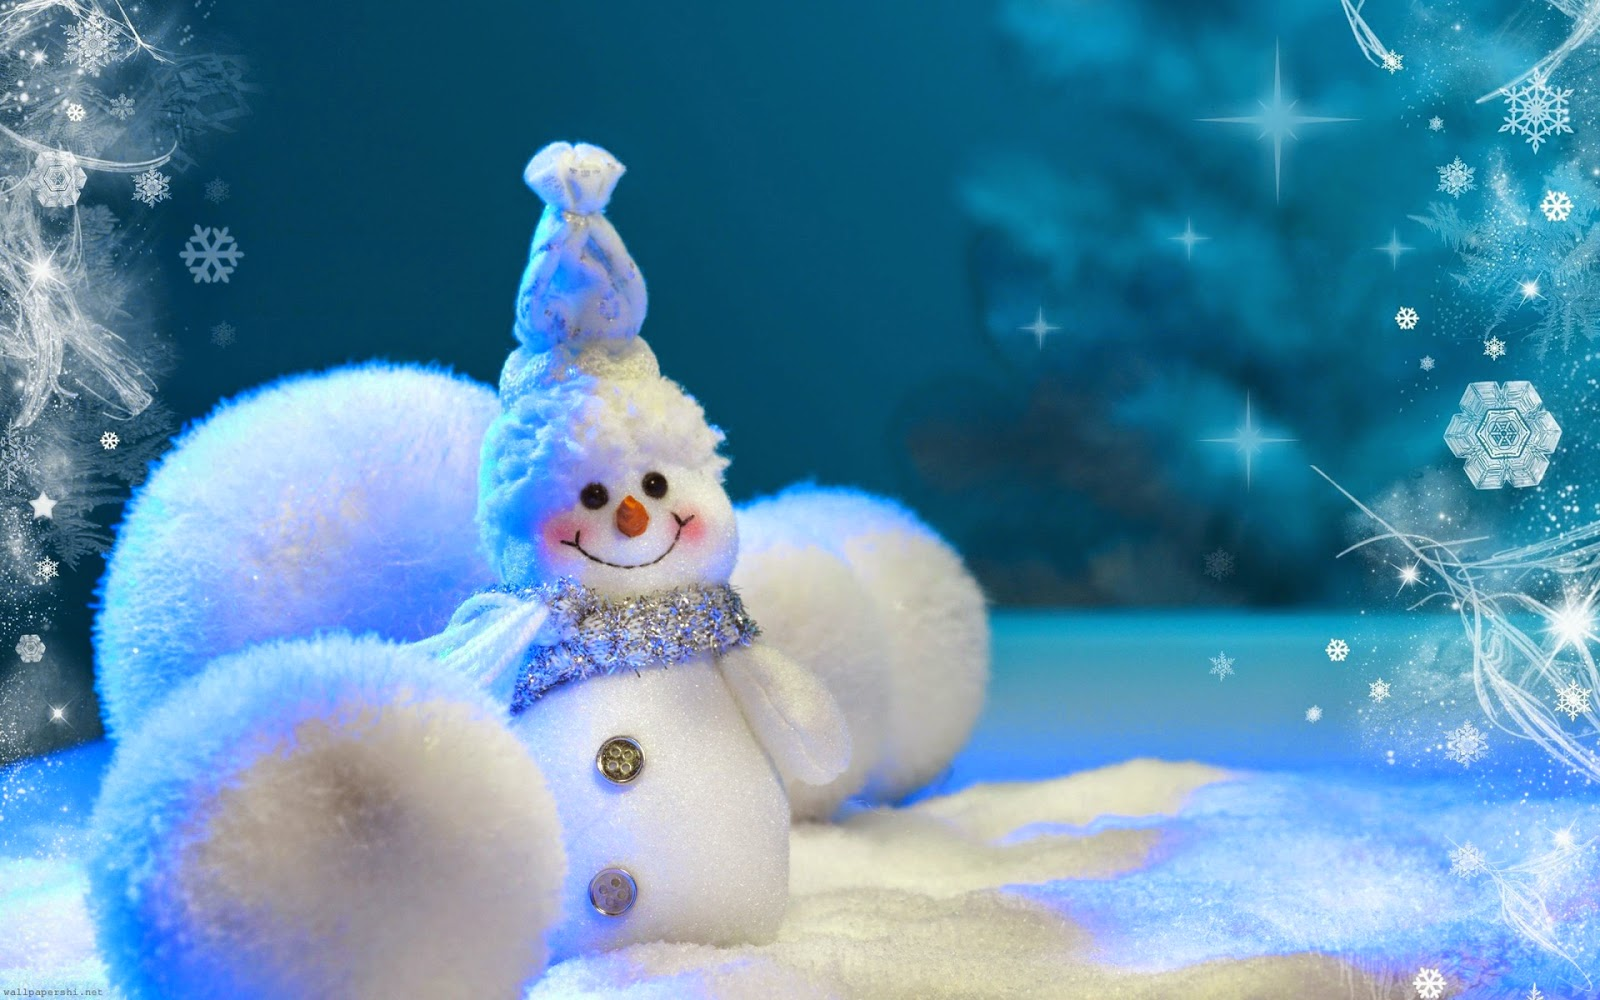 Cute Snowman Wallpapers WhatsApp Girls Number 1600x1000